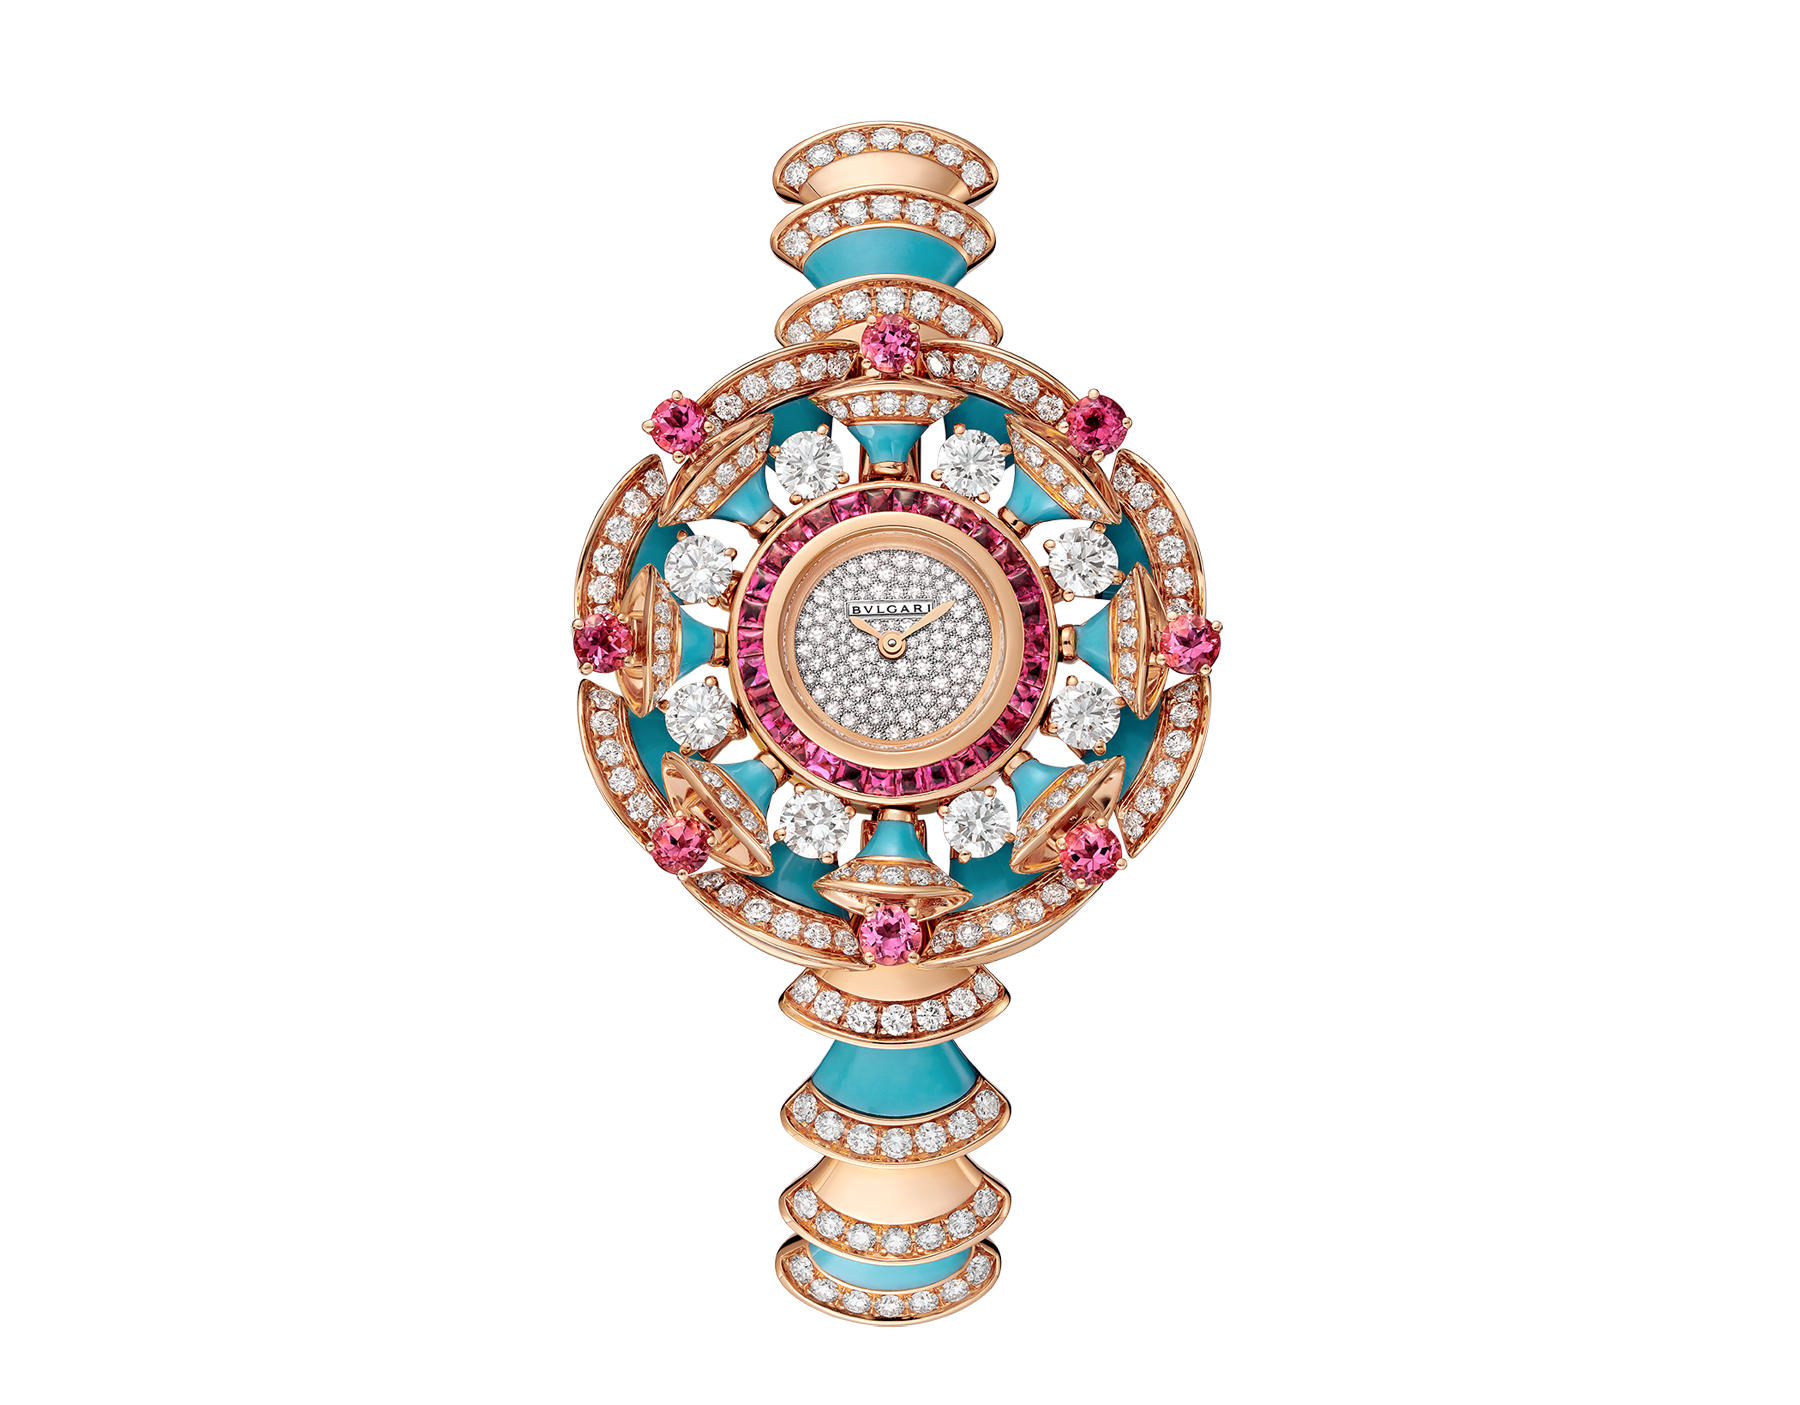 DIVAS' DREAM watch with 18 kt rose gold case set with brilliant-cut diamonds, pink tourmalines and turquoises, snow pavé dial and 18 kt rose gold bracelet set with brilliant-cut diamonds and turquoises 102079 image 1